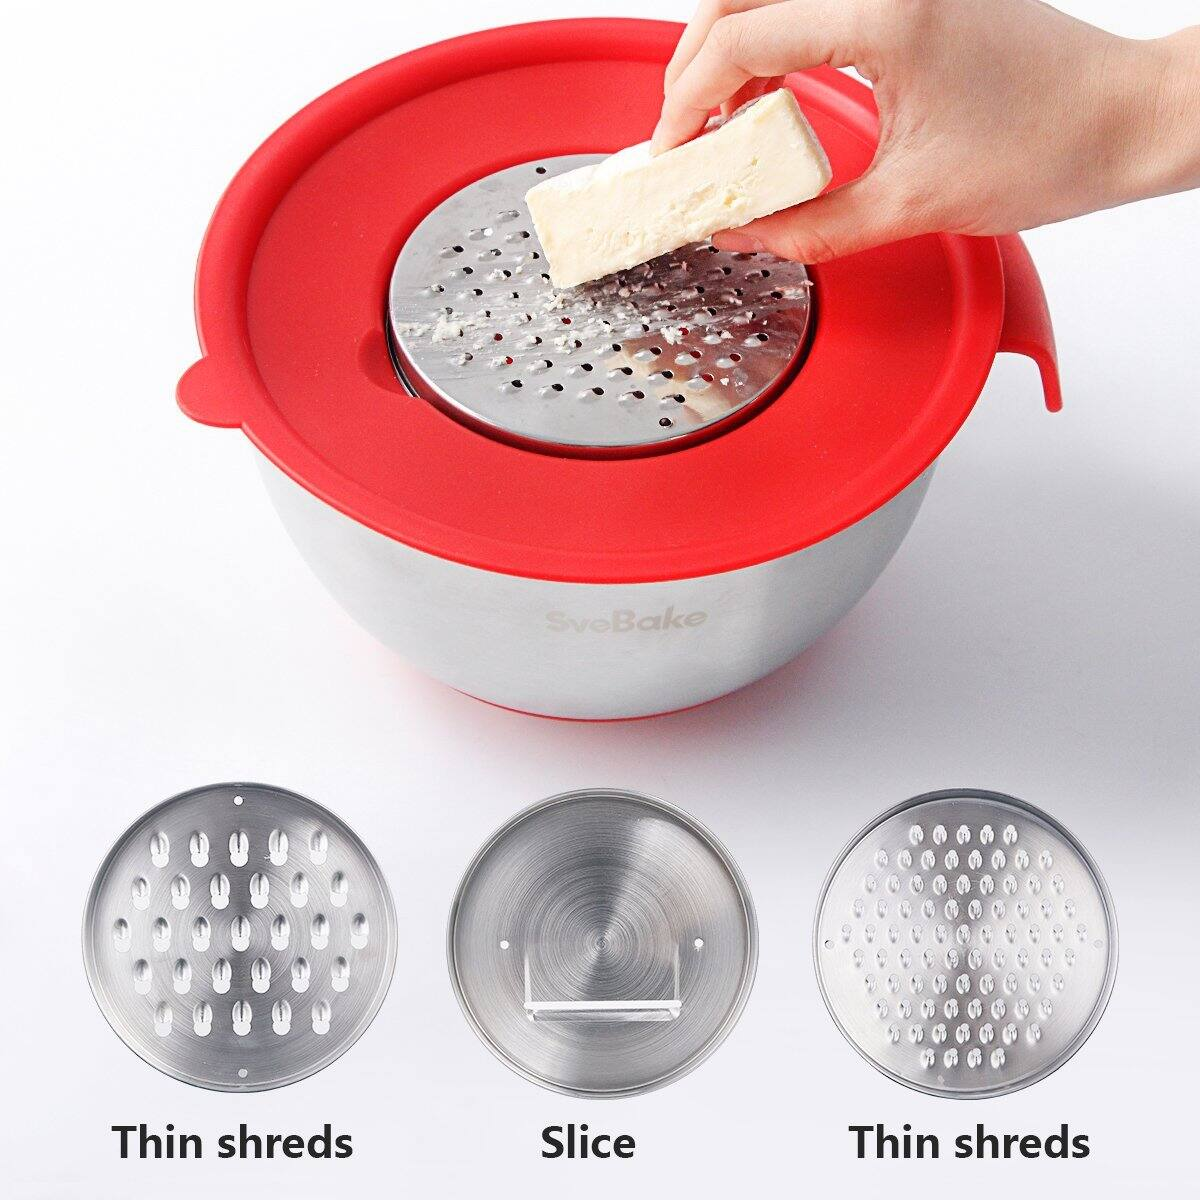 3-sets Stainless Steel Mixing Bowl Set with Handles, Pour Spouts, Non-Slip Base and Graters $25.89 shipped from Amazon